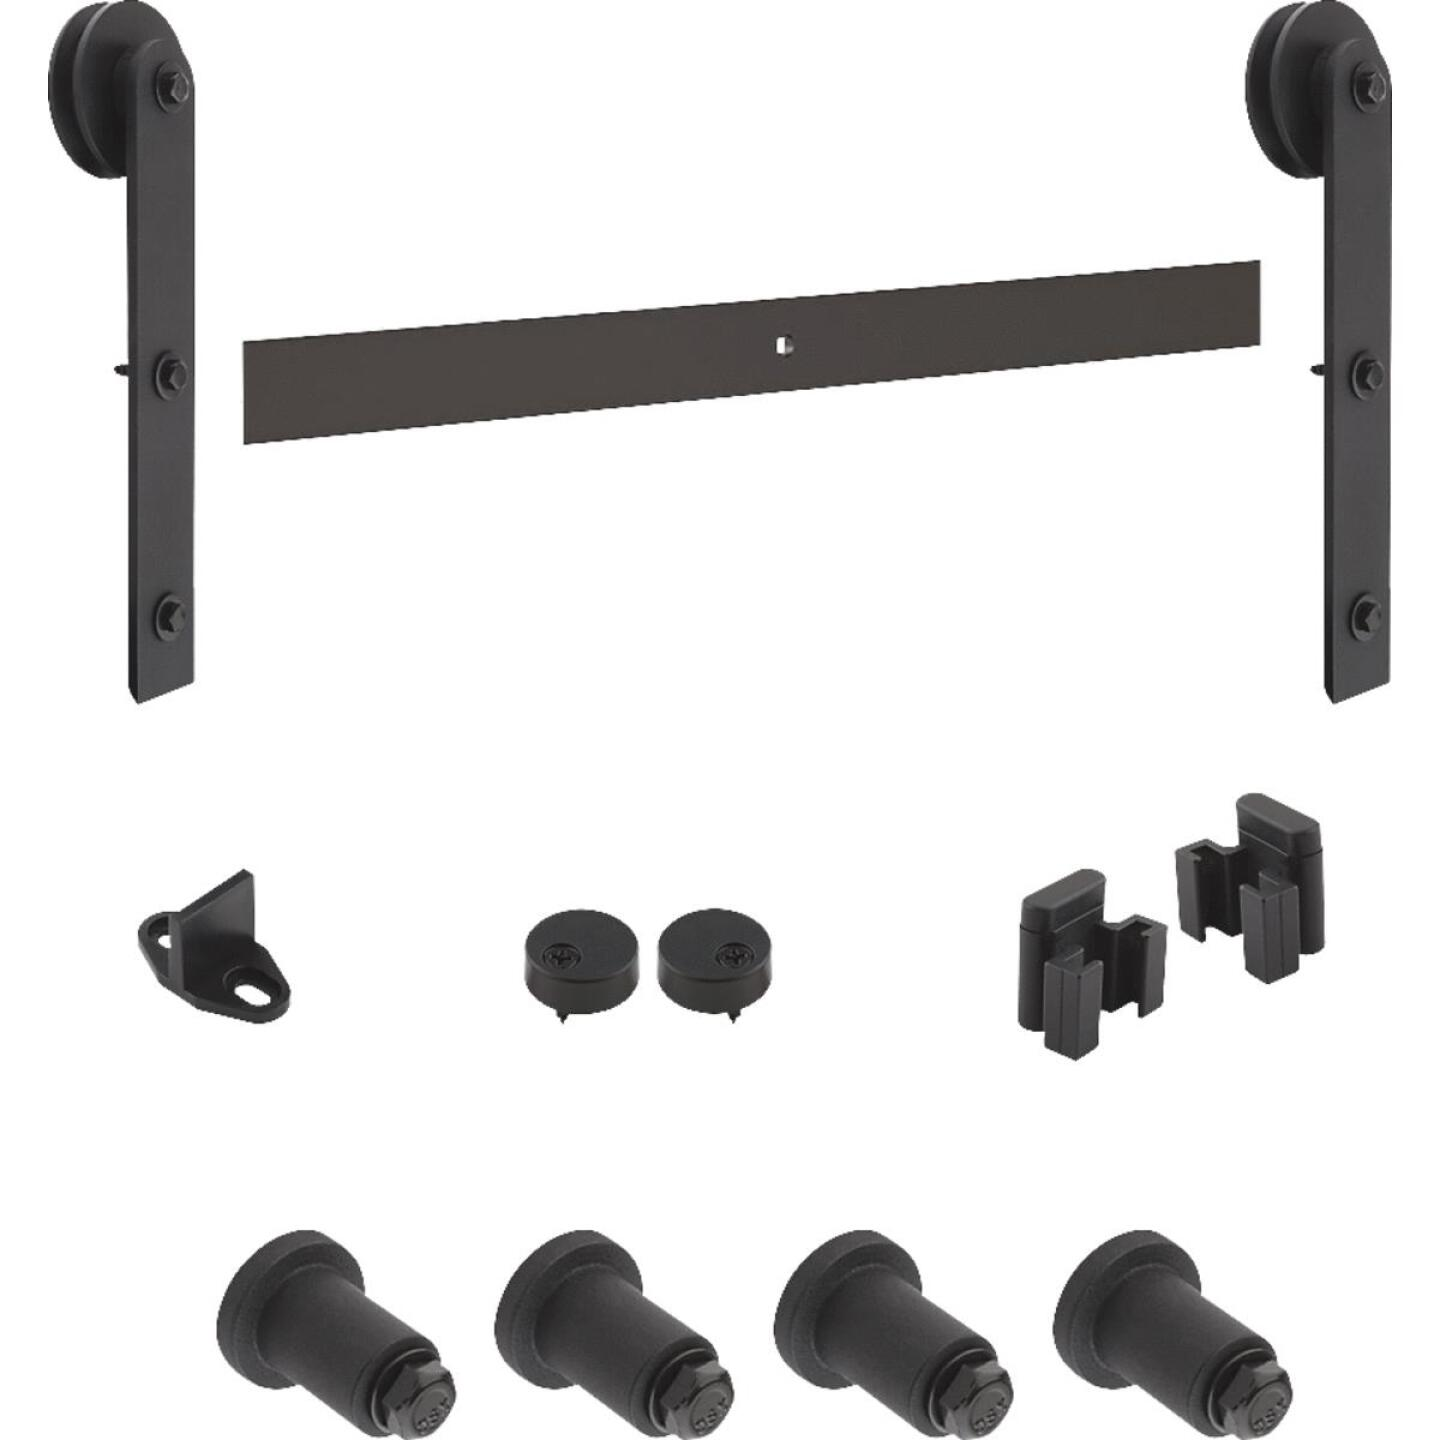 National Black Interior Sliding Barn Door Track Hardware Kit Image 1